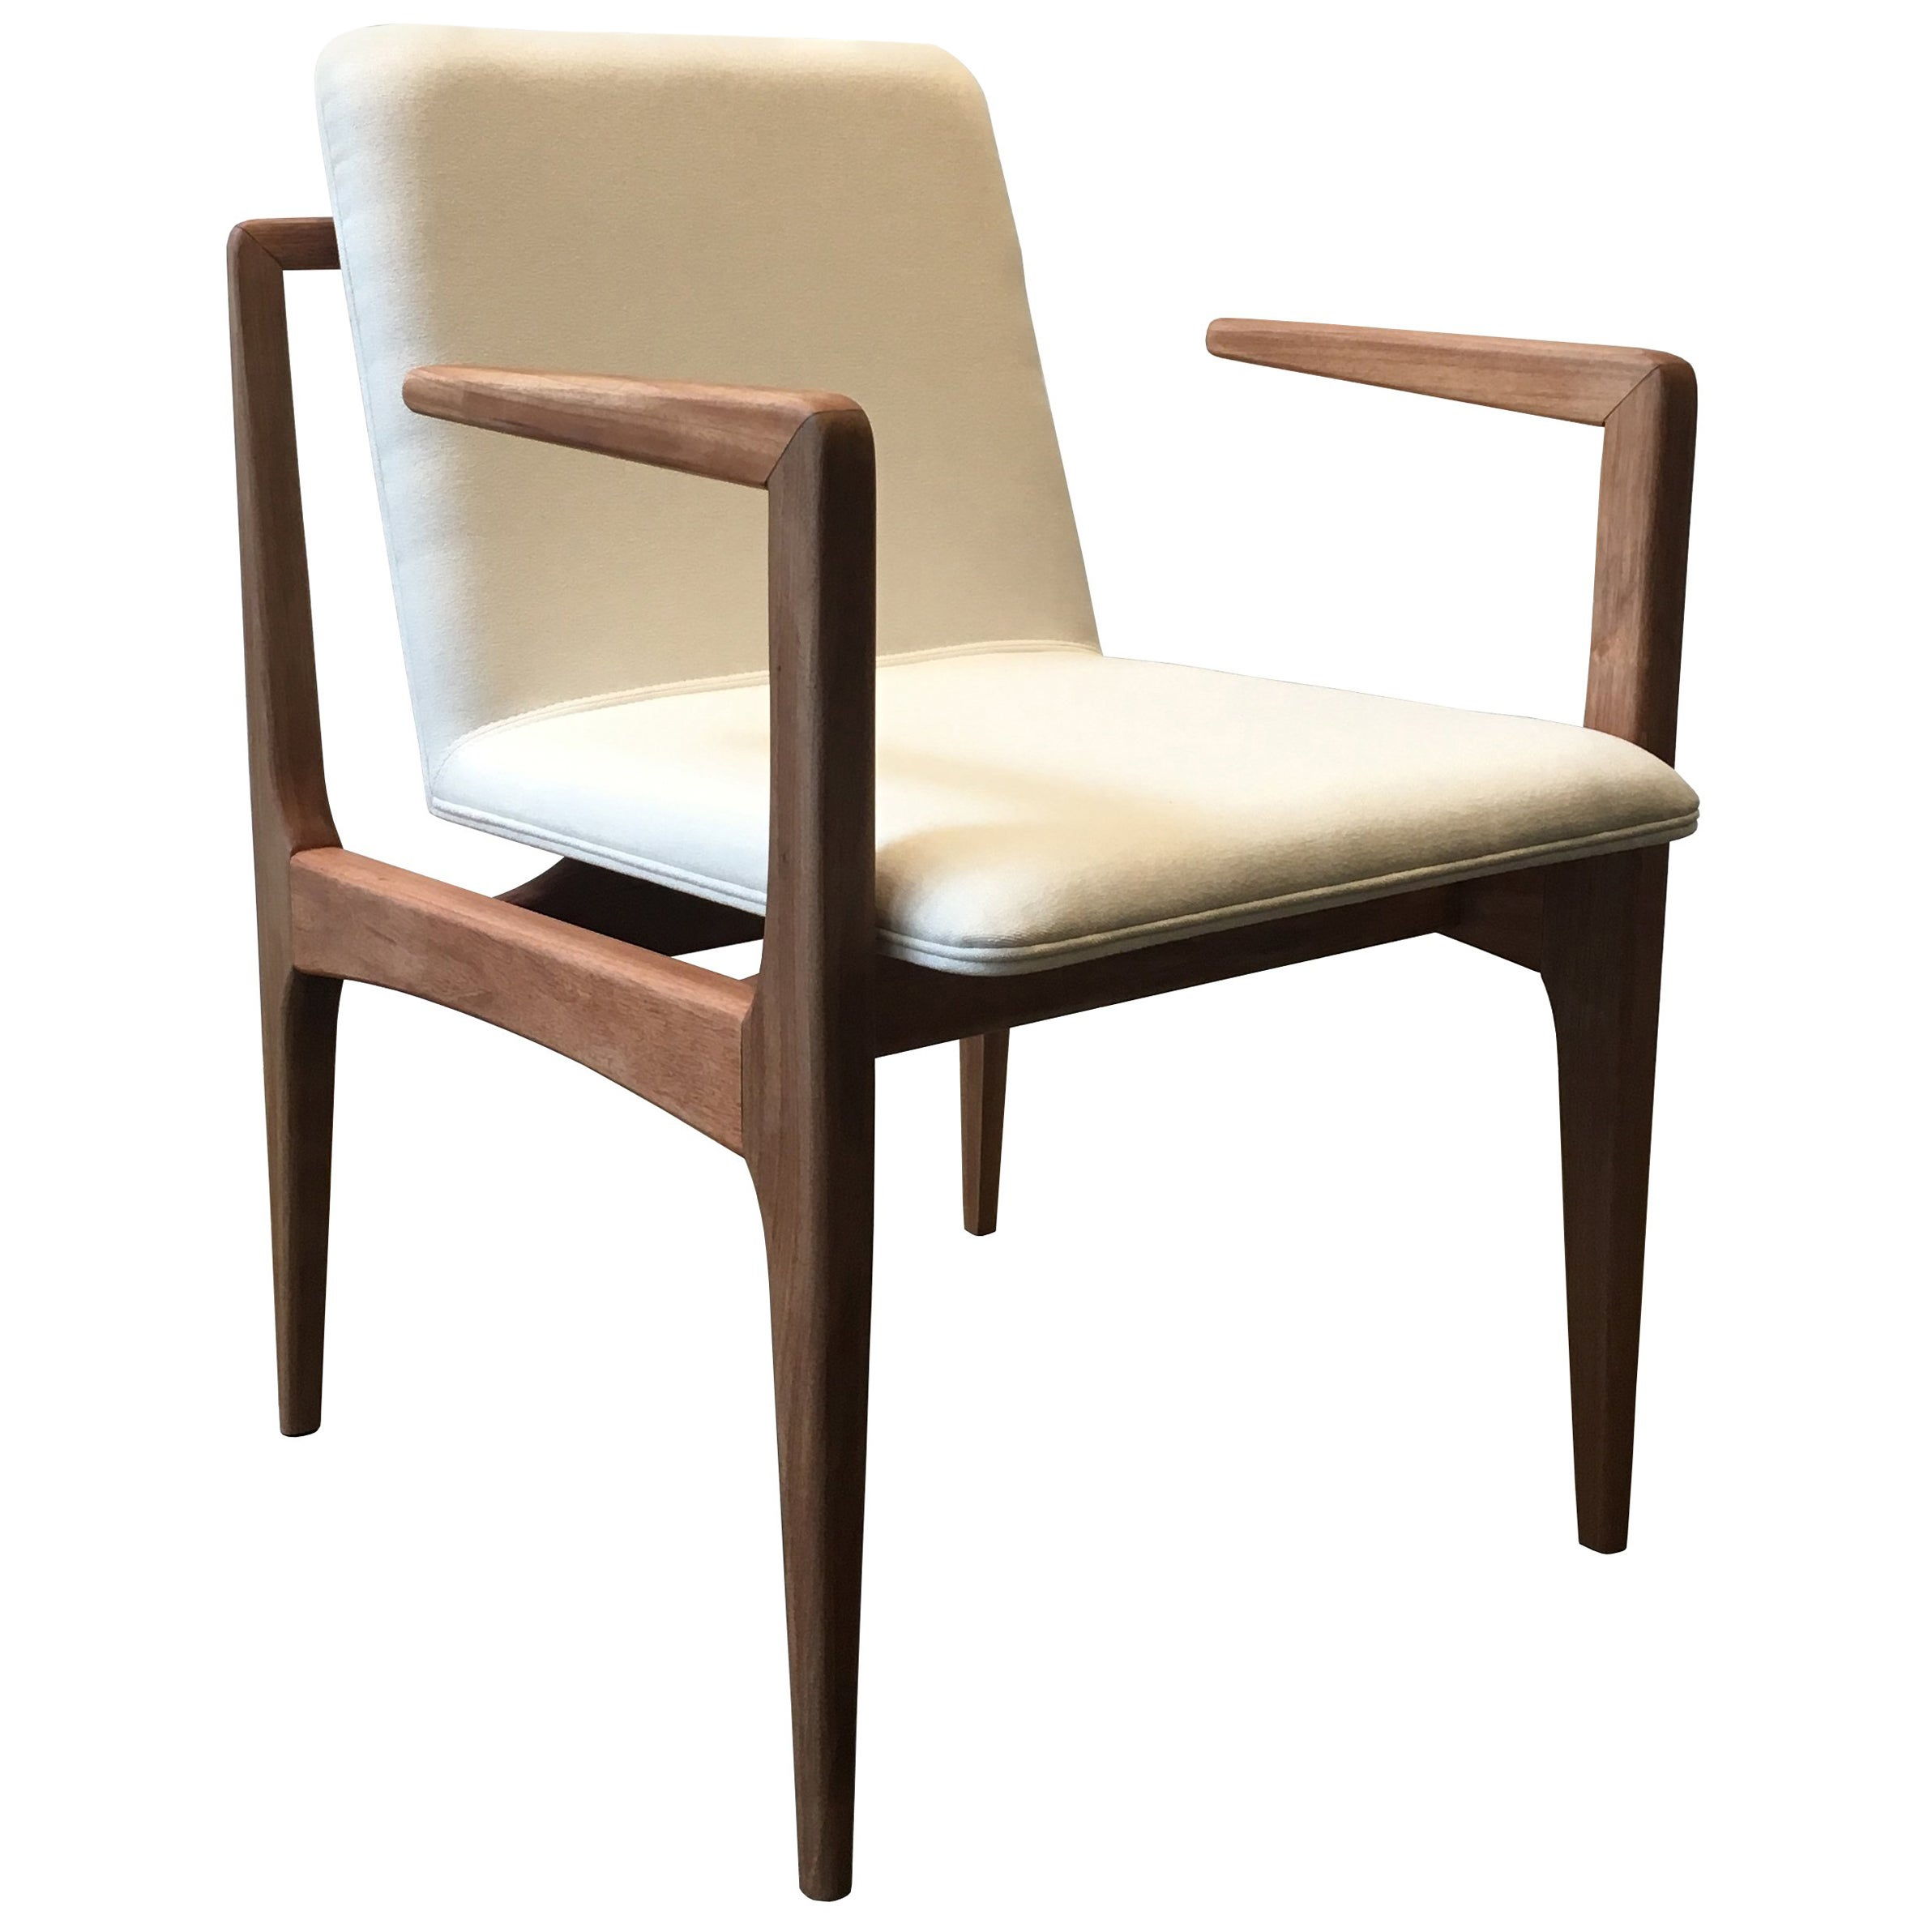 """""""Oscar"""" Minimalist Chair with Arms in Solid Jequitibá Wood and Handwoven"""